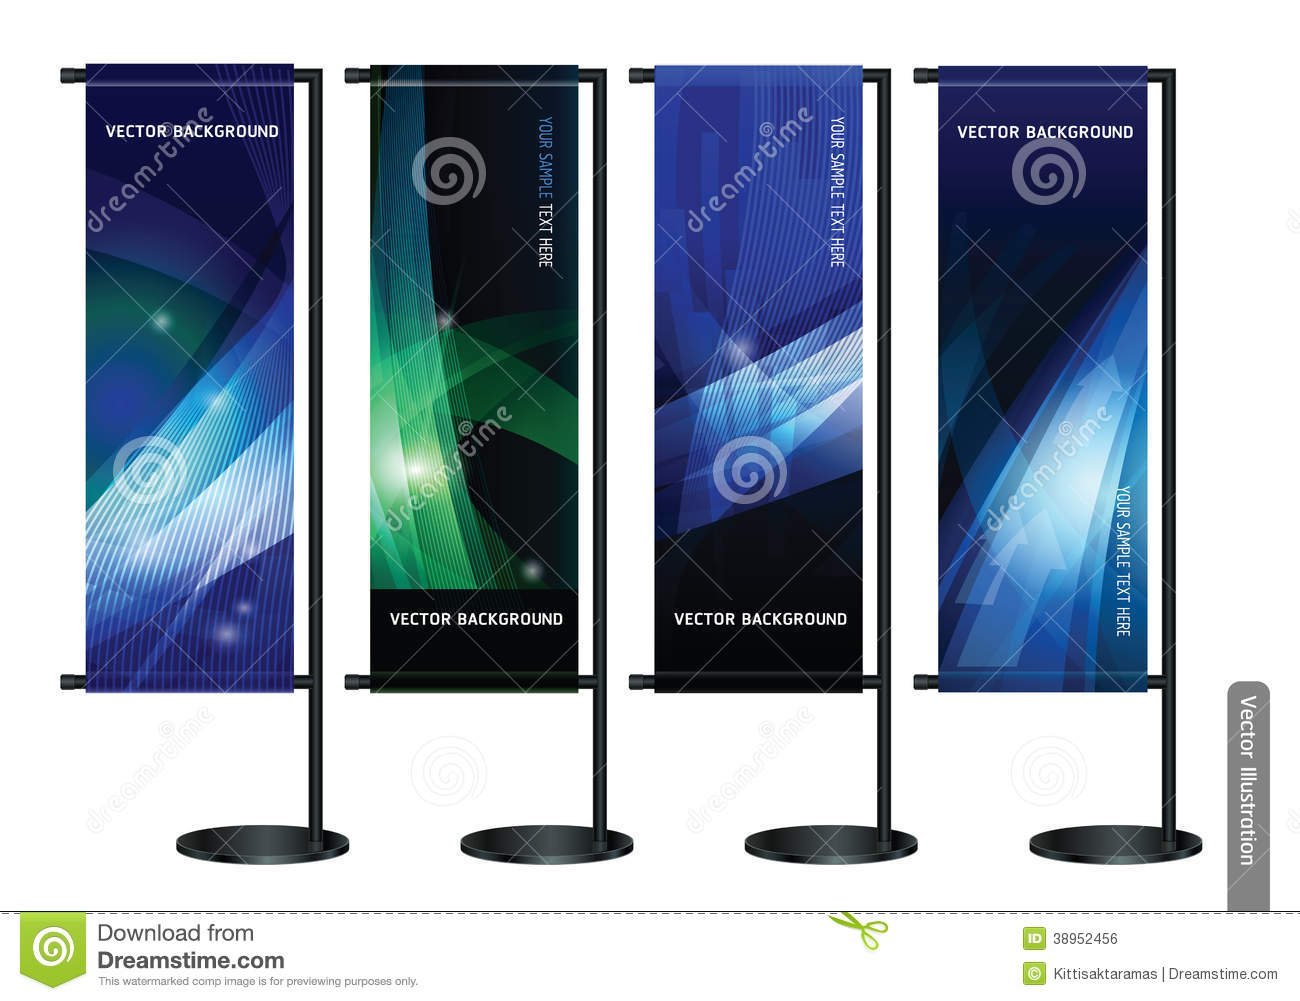 Exhibition Stand Vector Free Download : Trade exhibition stand display background stock vector